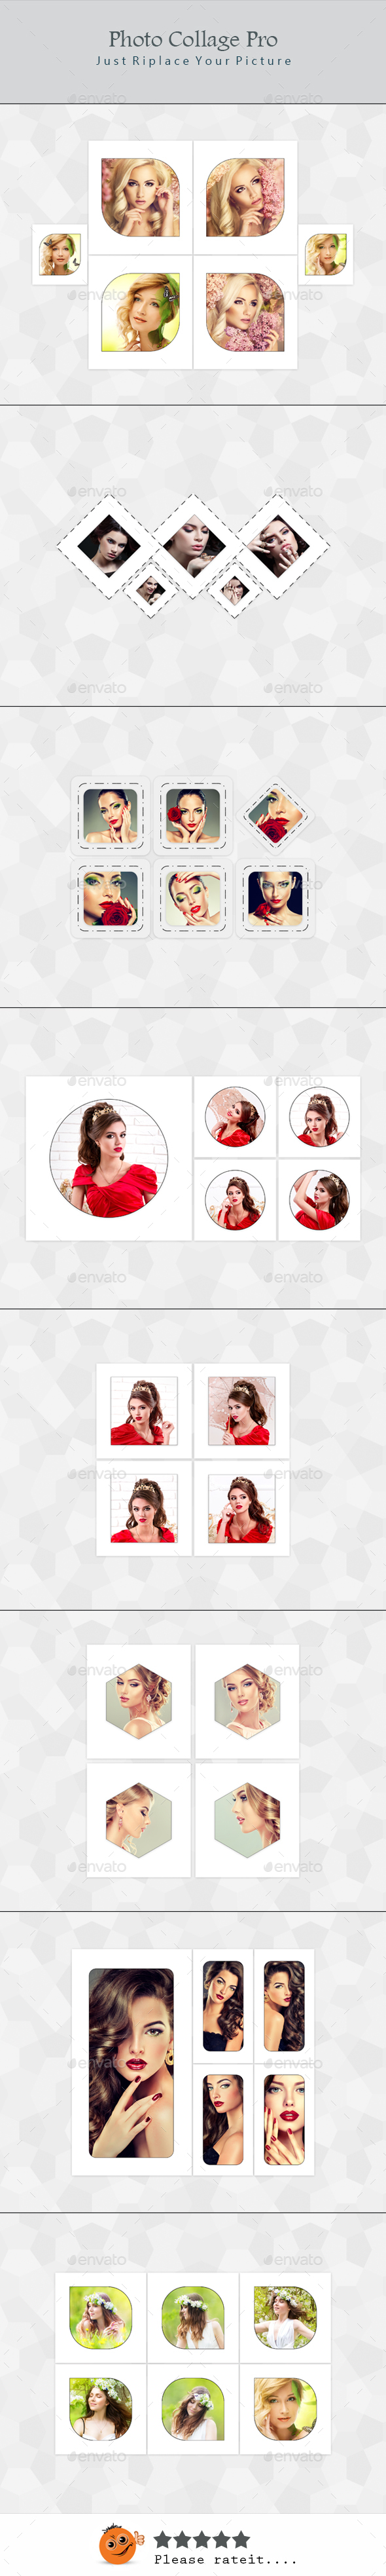 Photo Collage Pro - Photo Templates Graphics